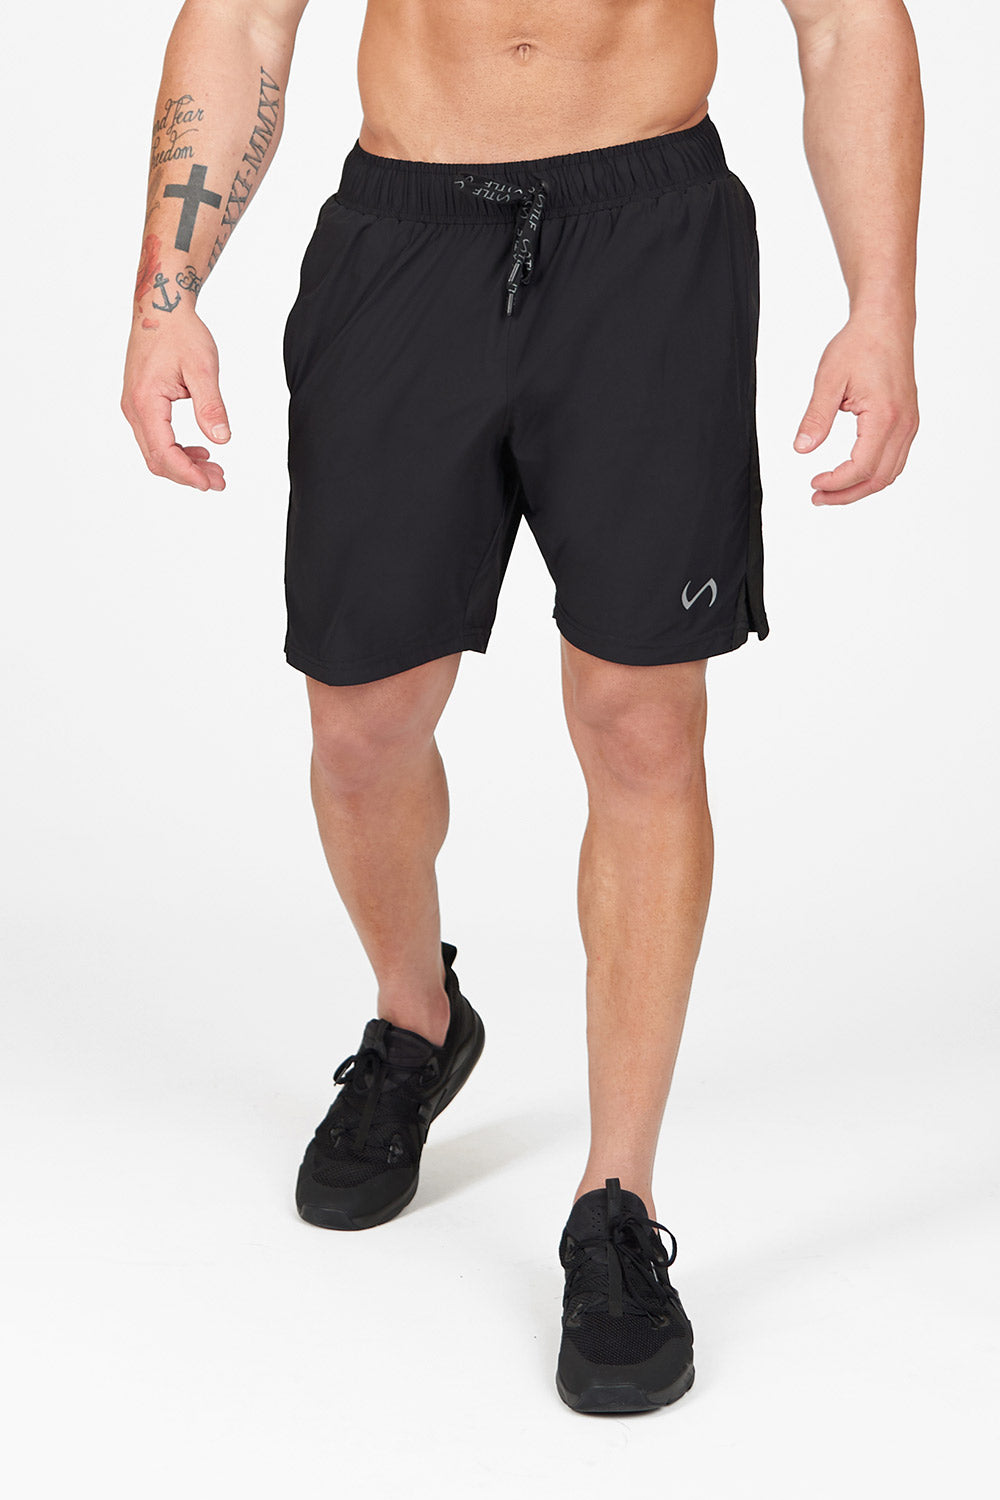 TLF Element Air-Flex Gym Shorts- TLF Apparel | Take Life Further